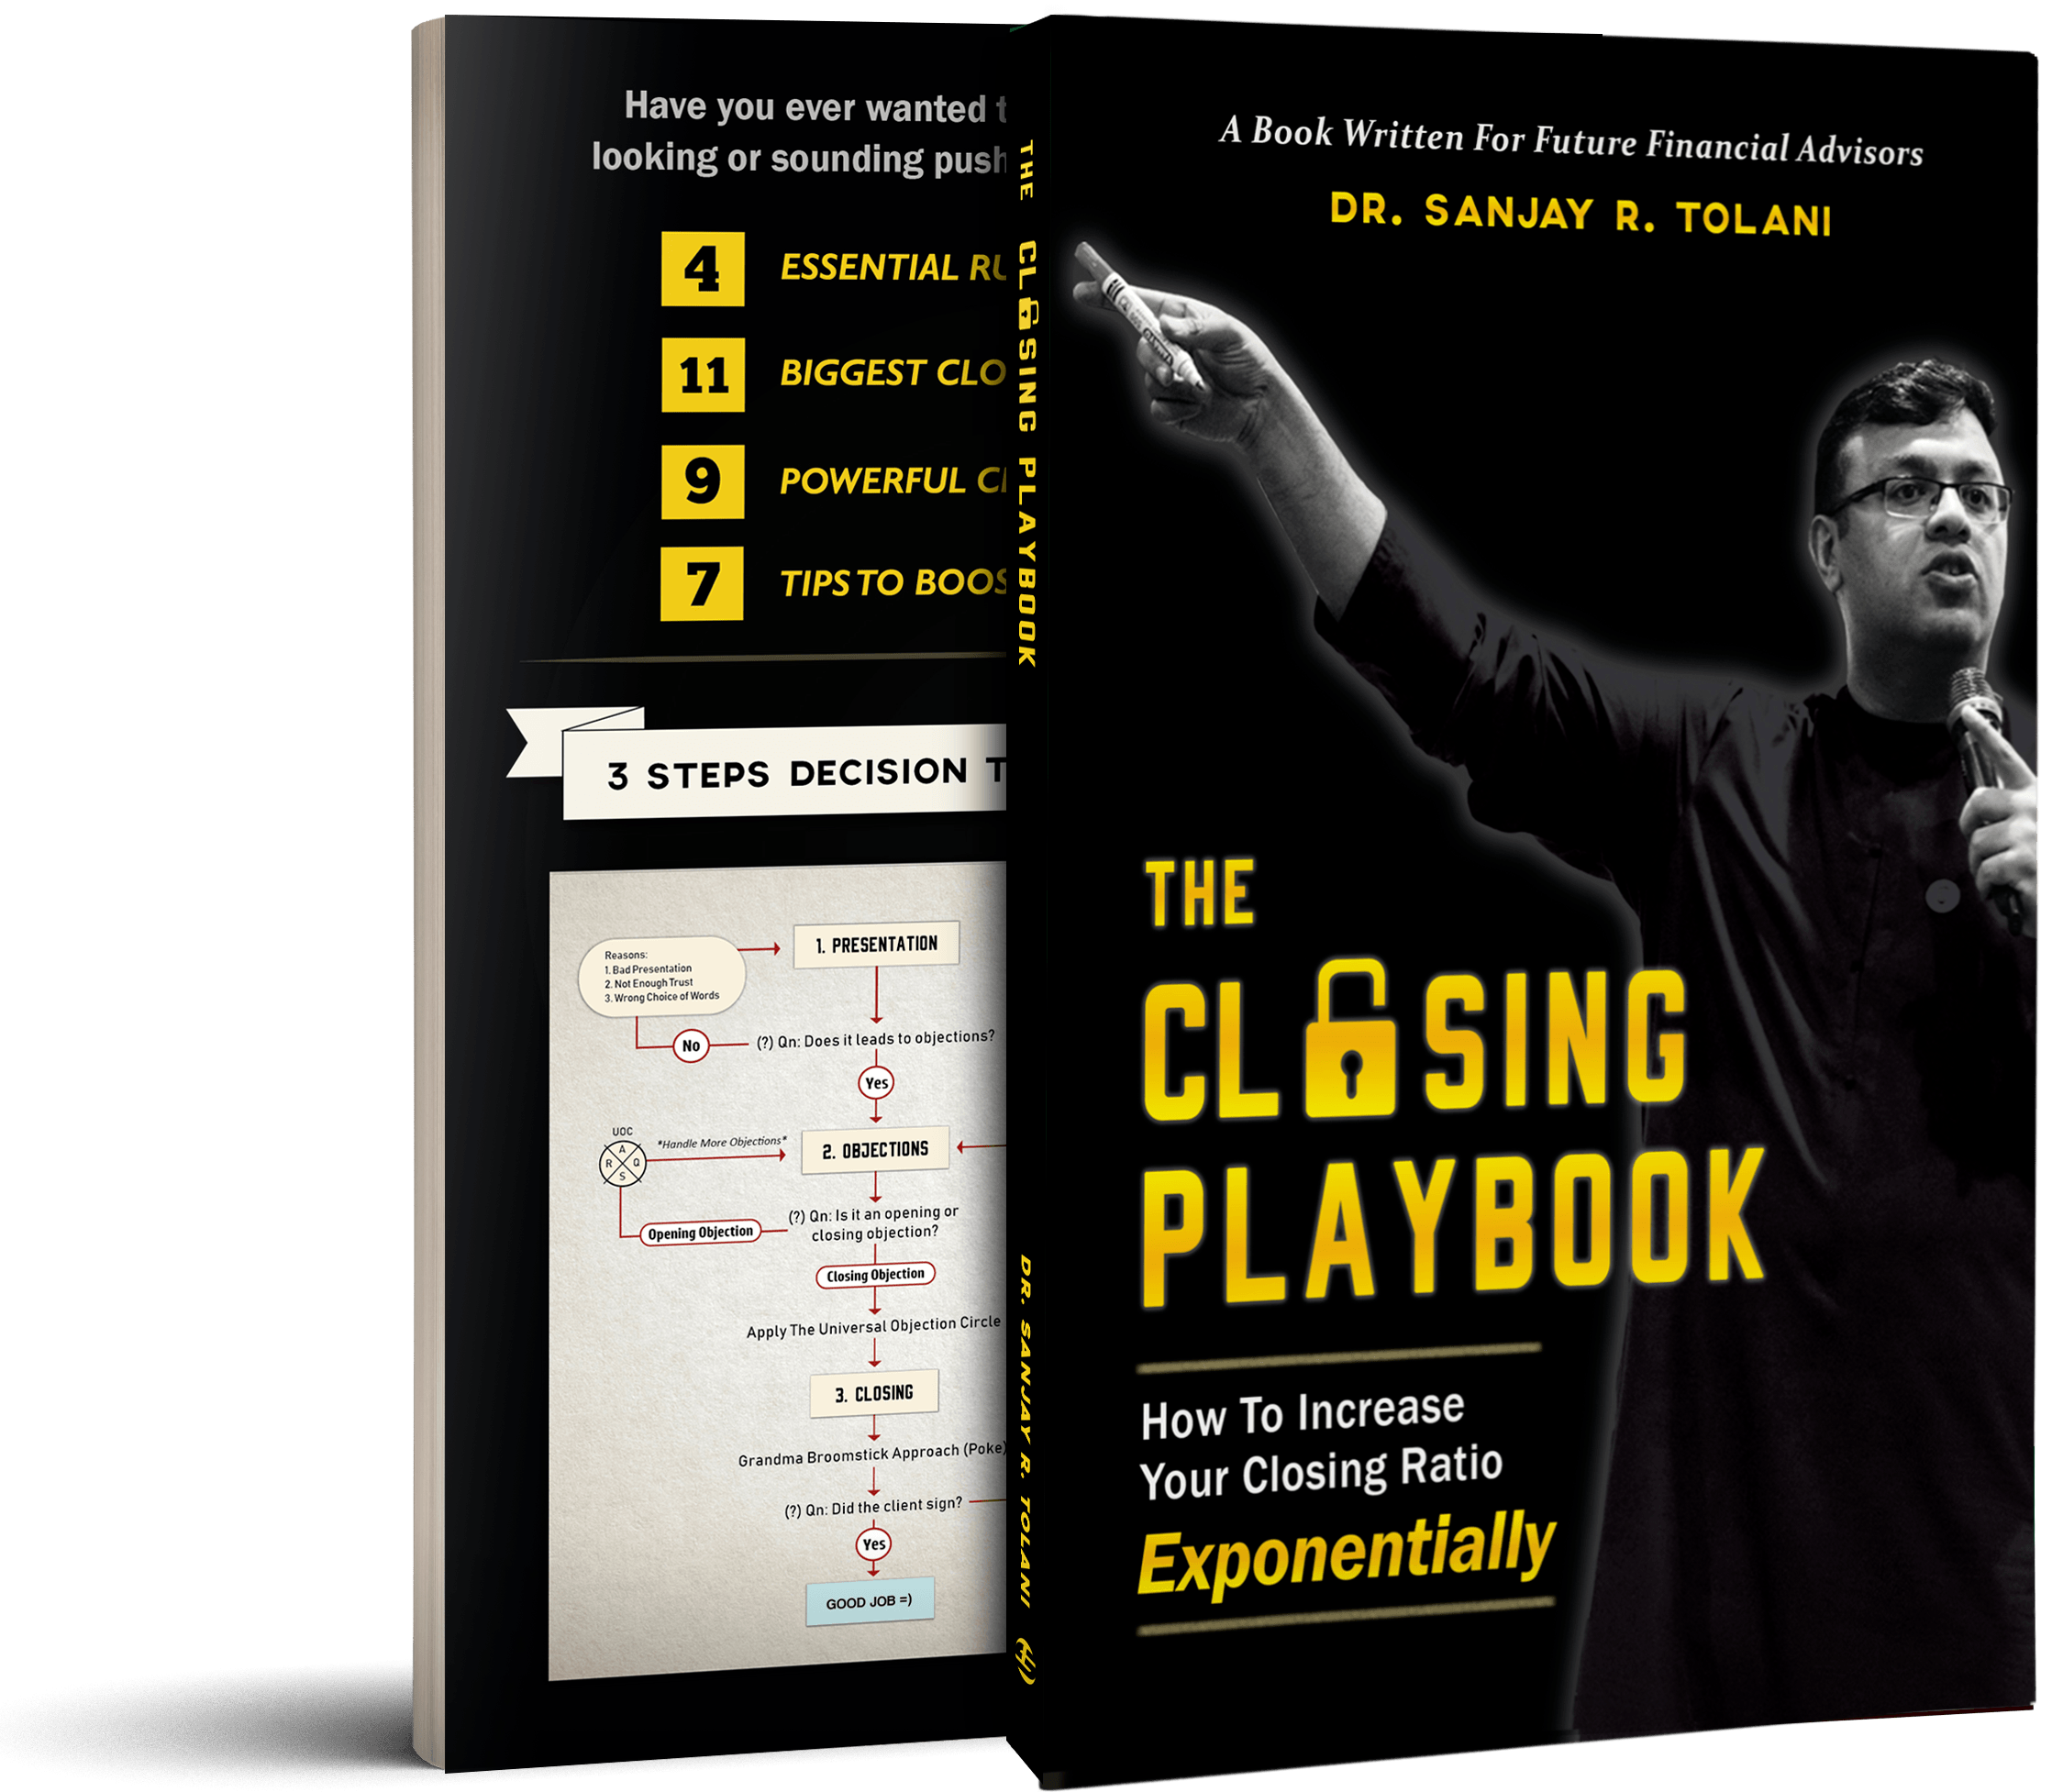 The Closing Playbook